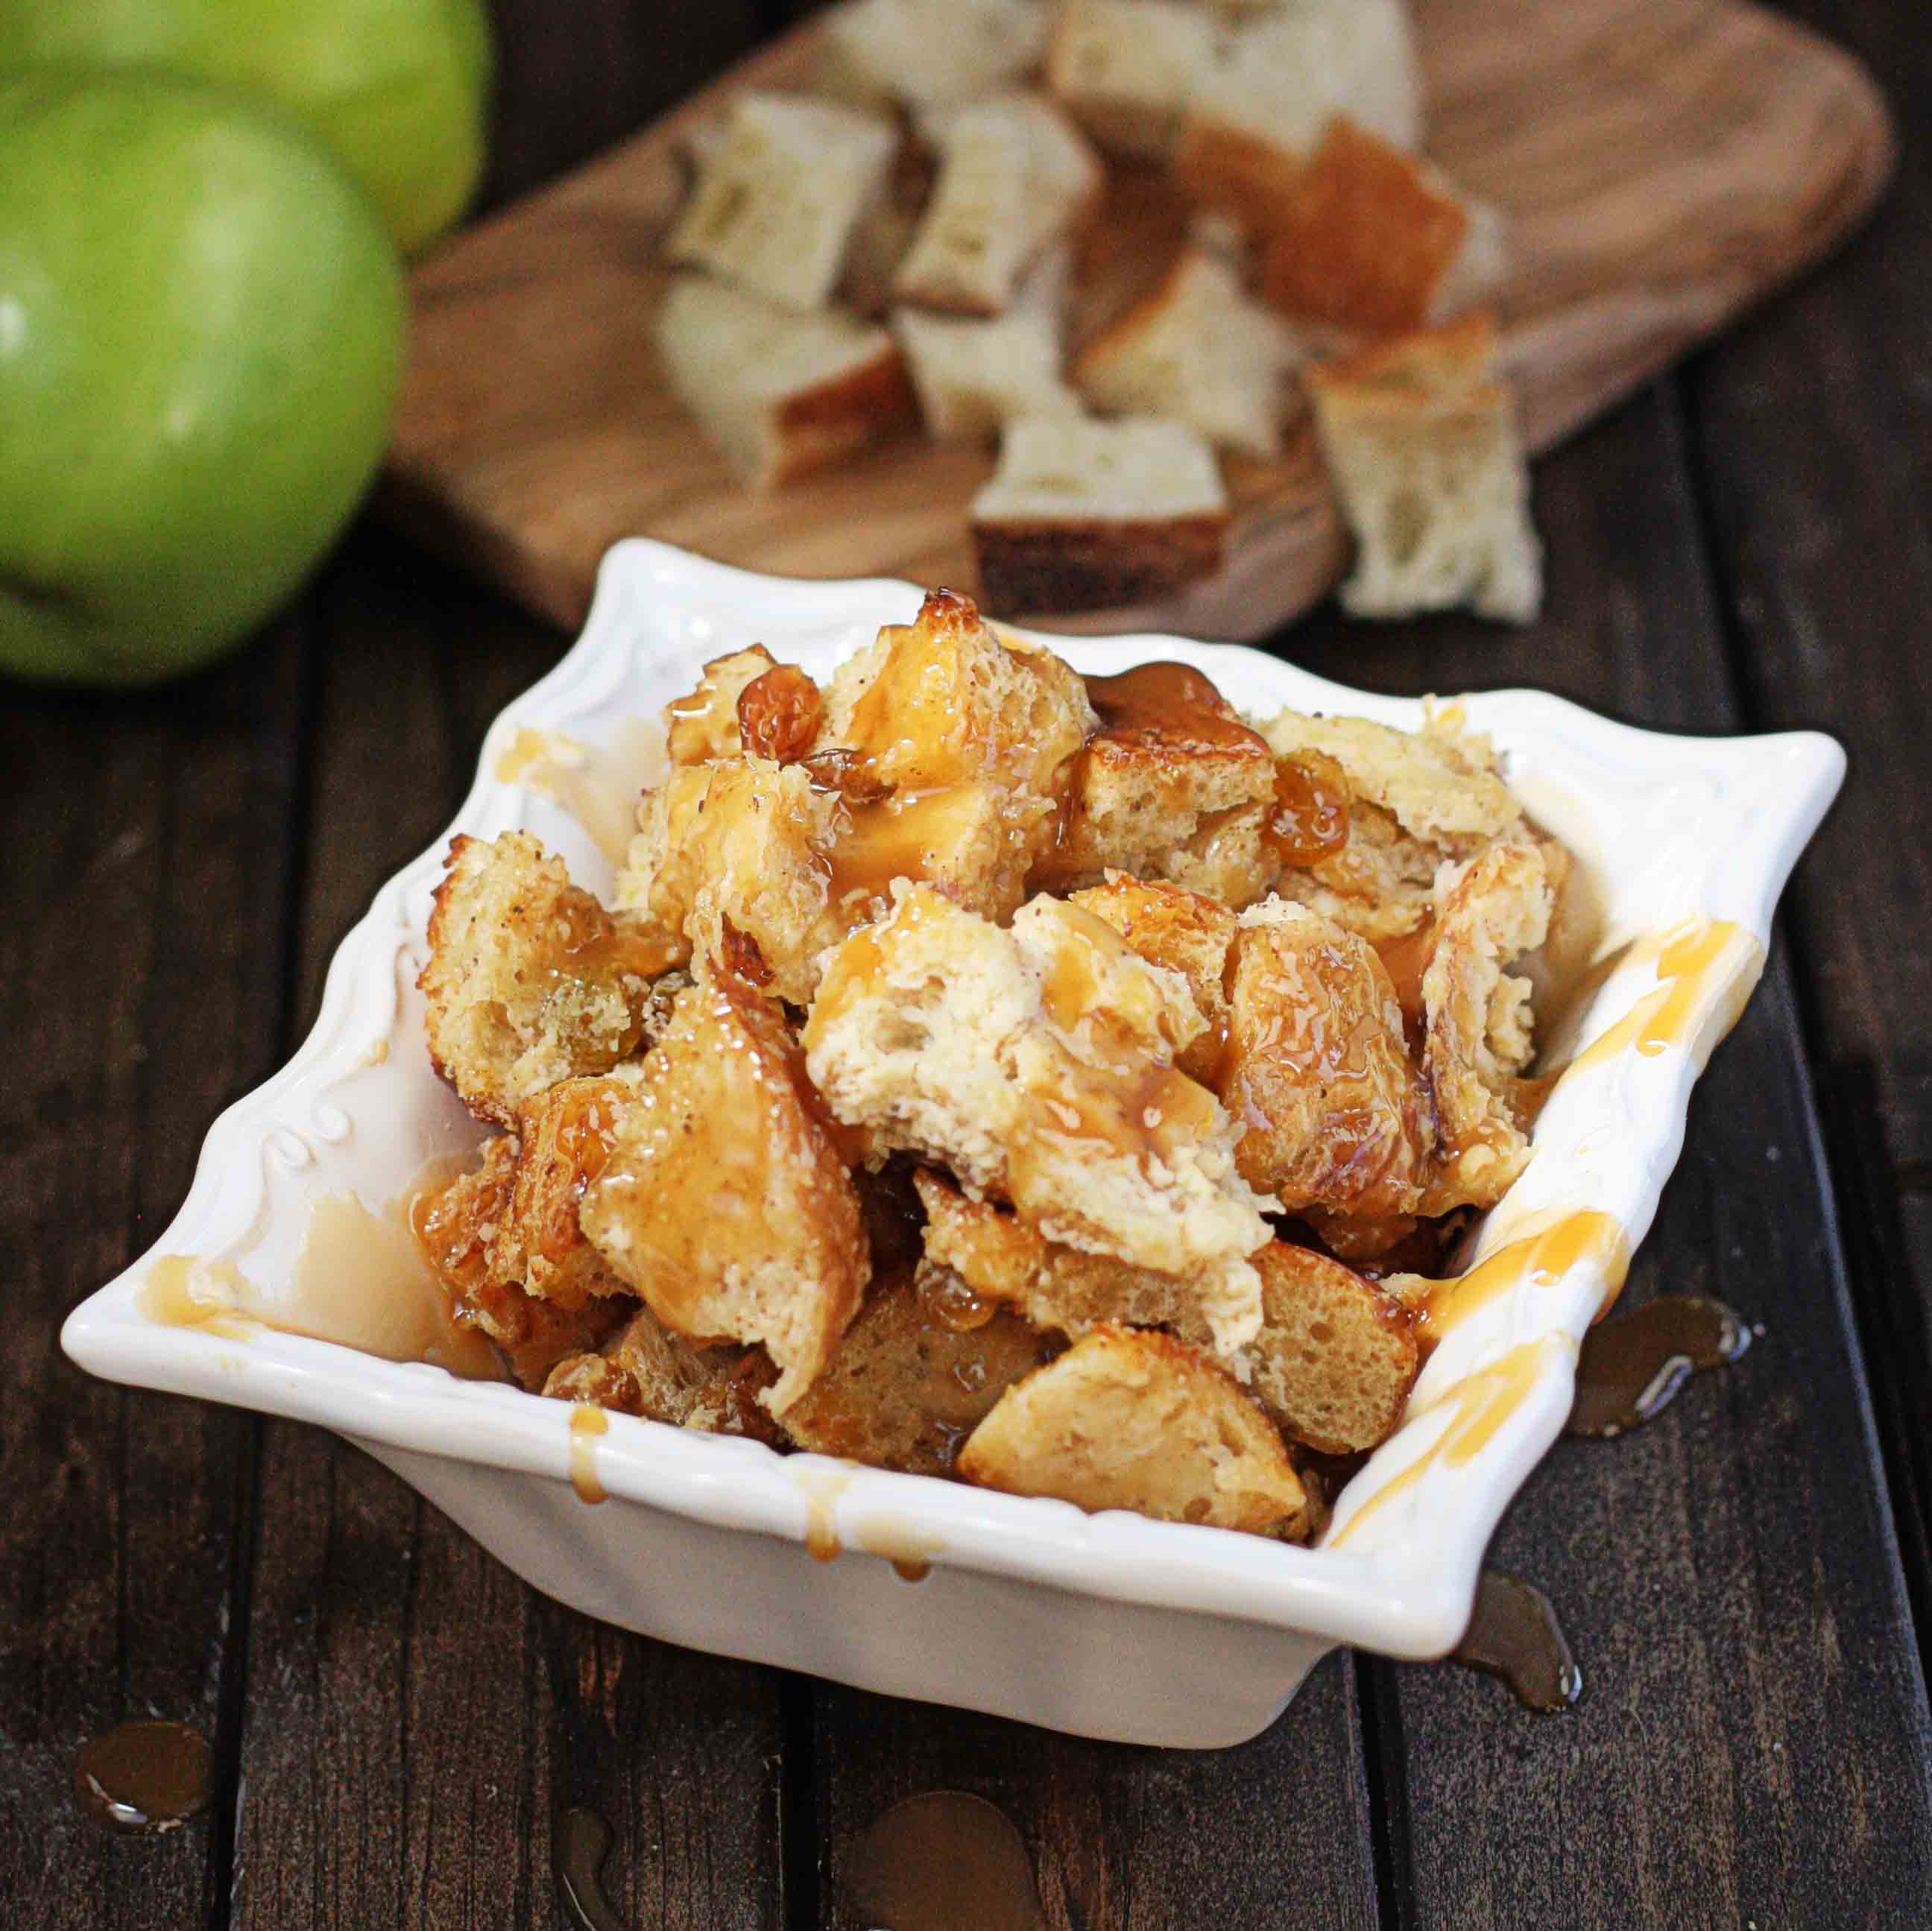 Boozy Desserts: Rum and Caramel Apple Bread Pudding - The Hopeless ...